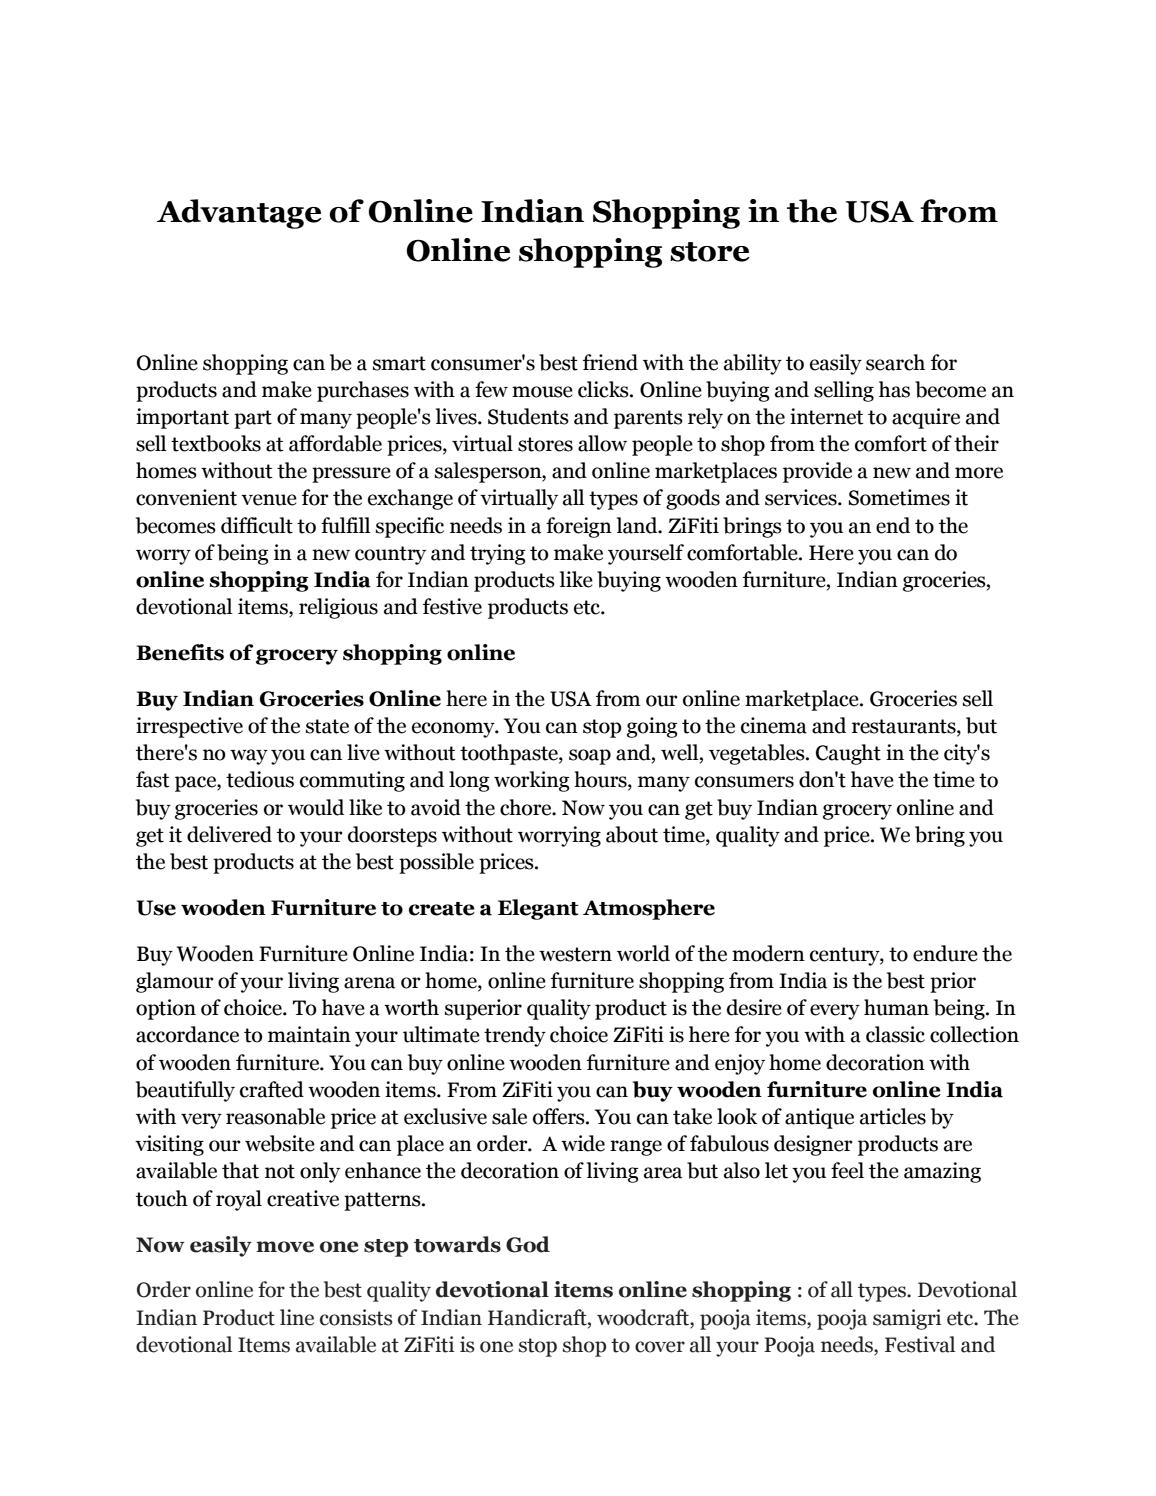 Advantage of online indian shopping in the usa from online